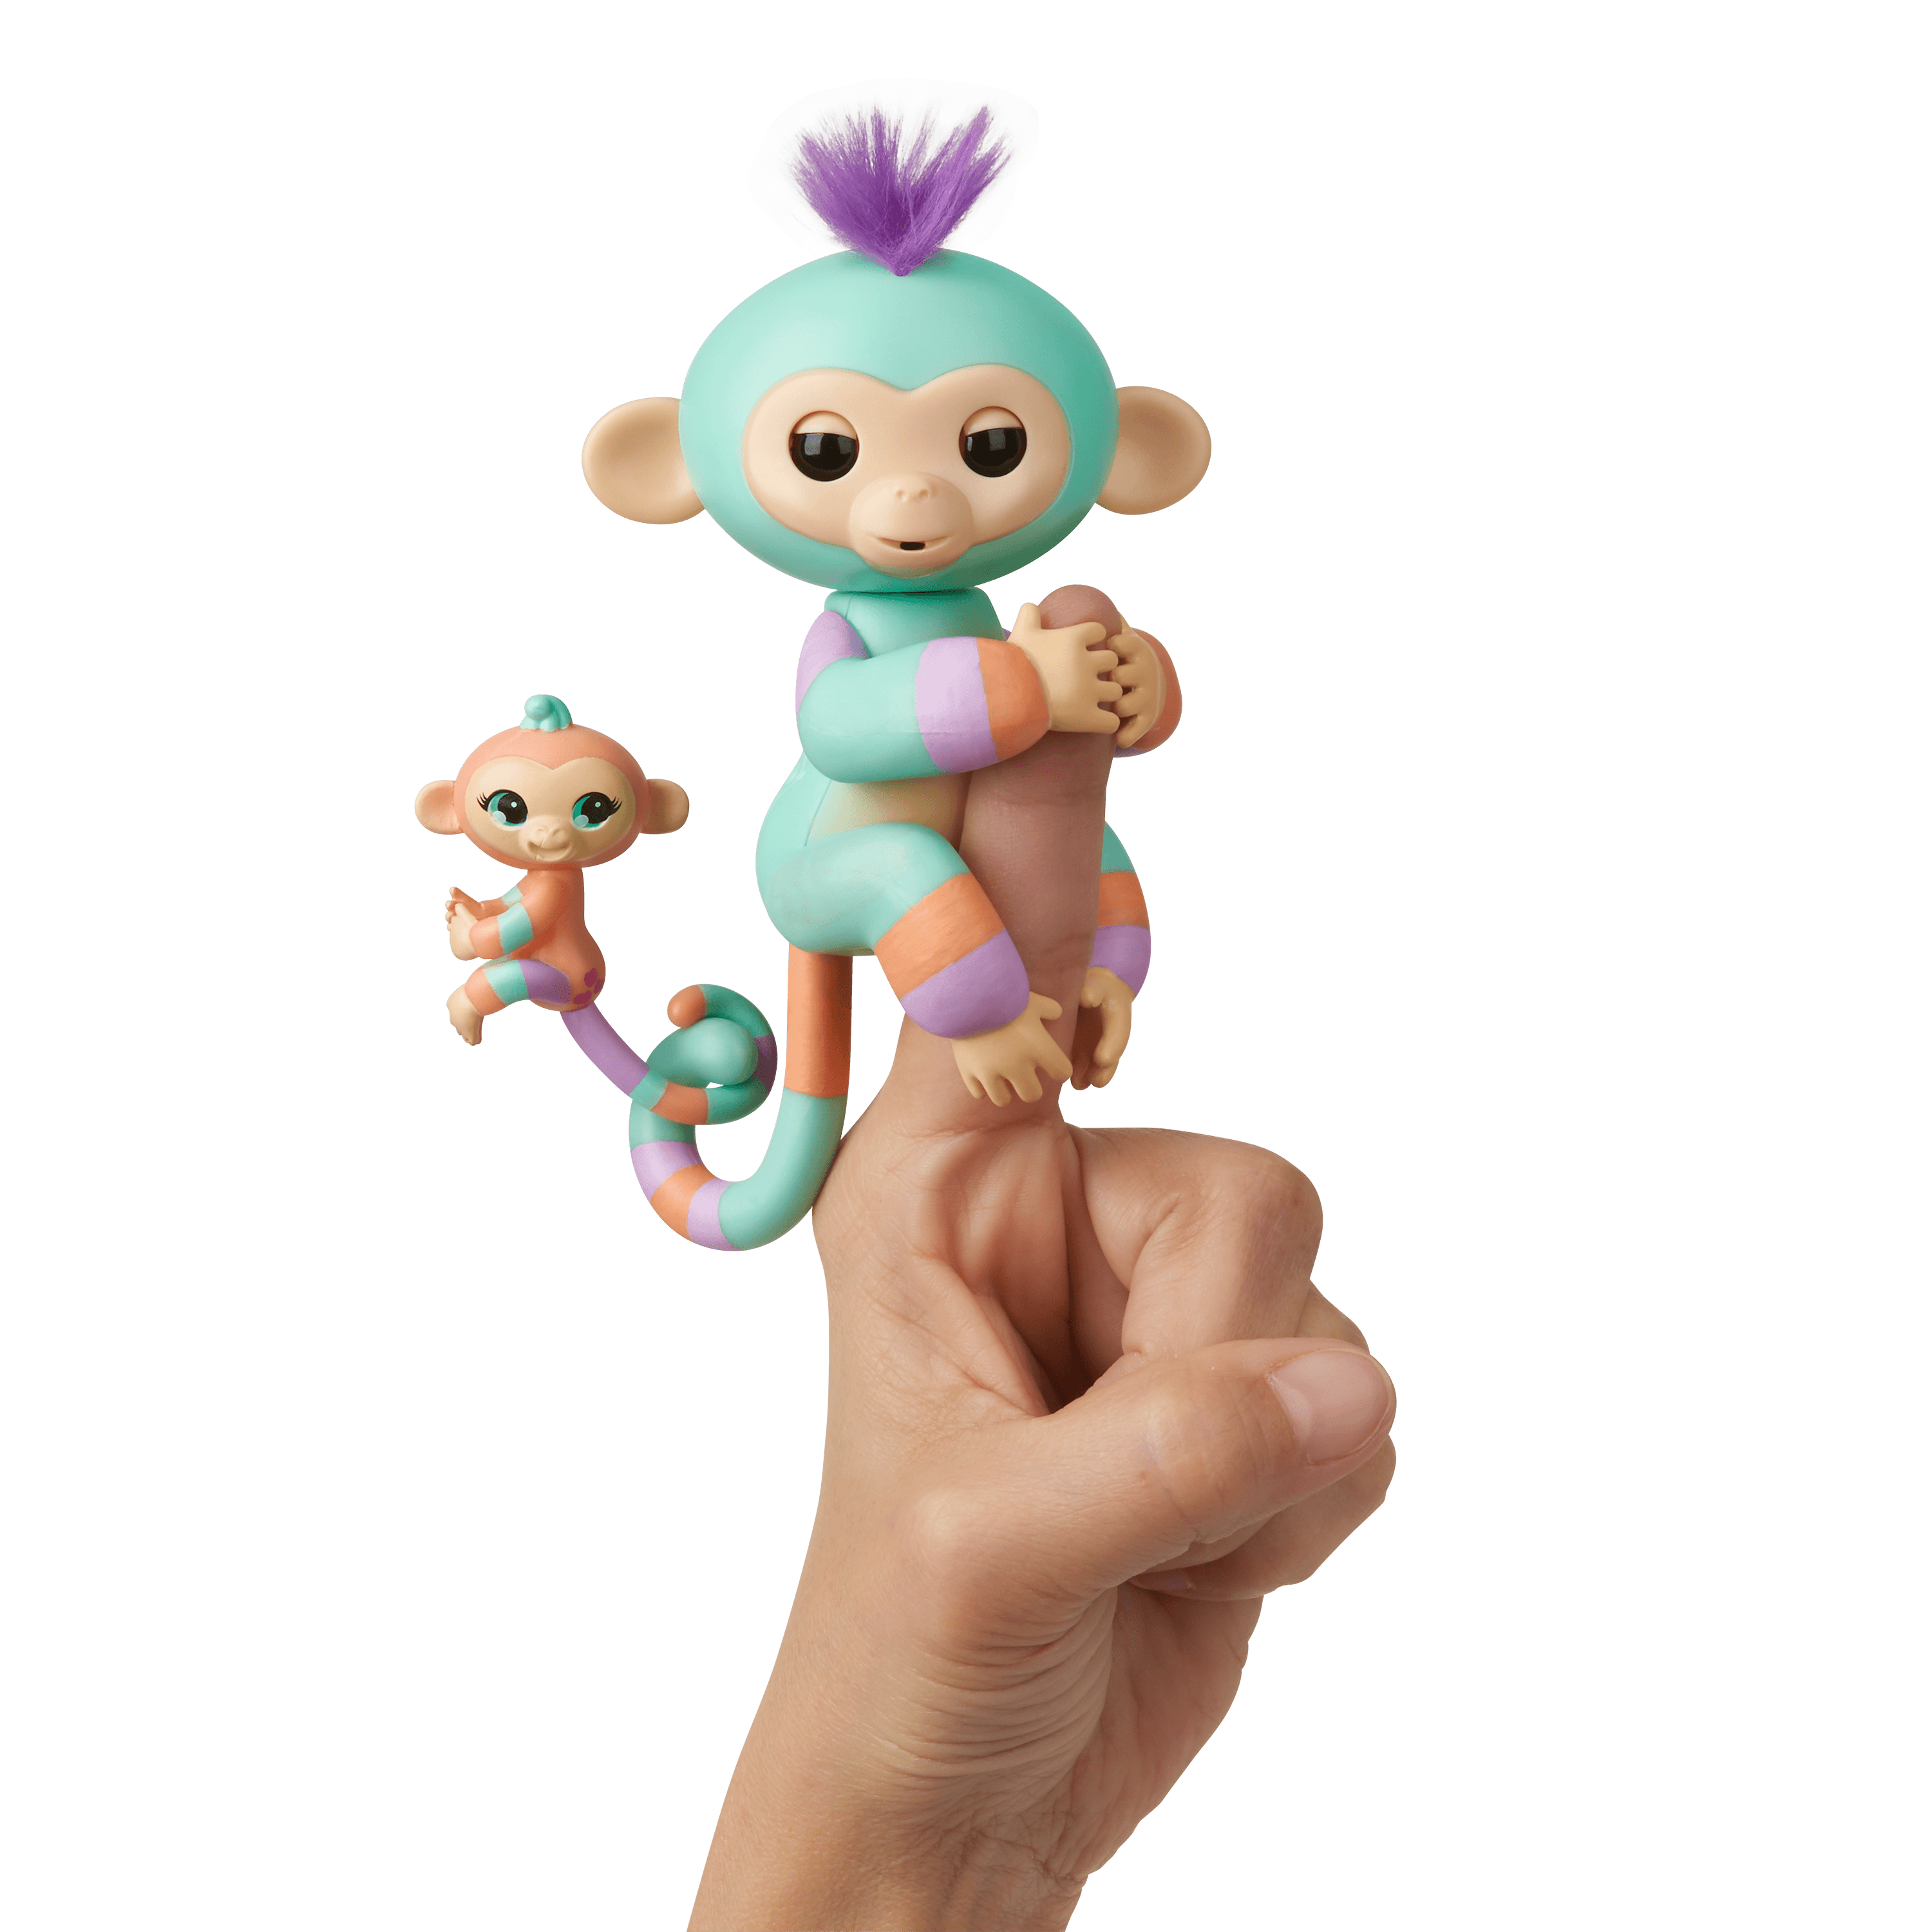 Fingerlings Baby Monkey & Mini BFFs - Danny & Gianna (Turquoise-Orange) - By WowWee